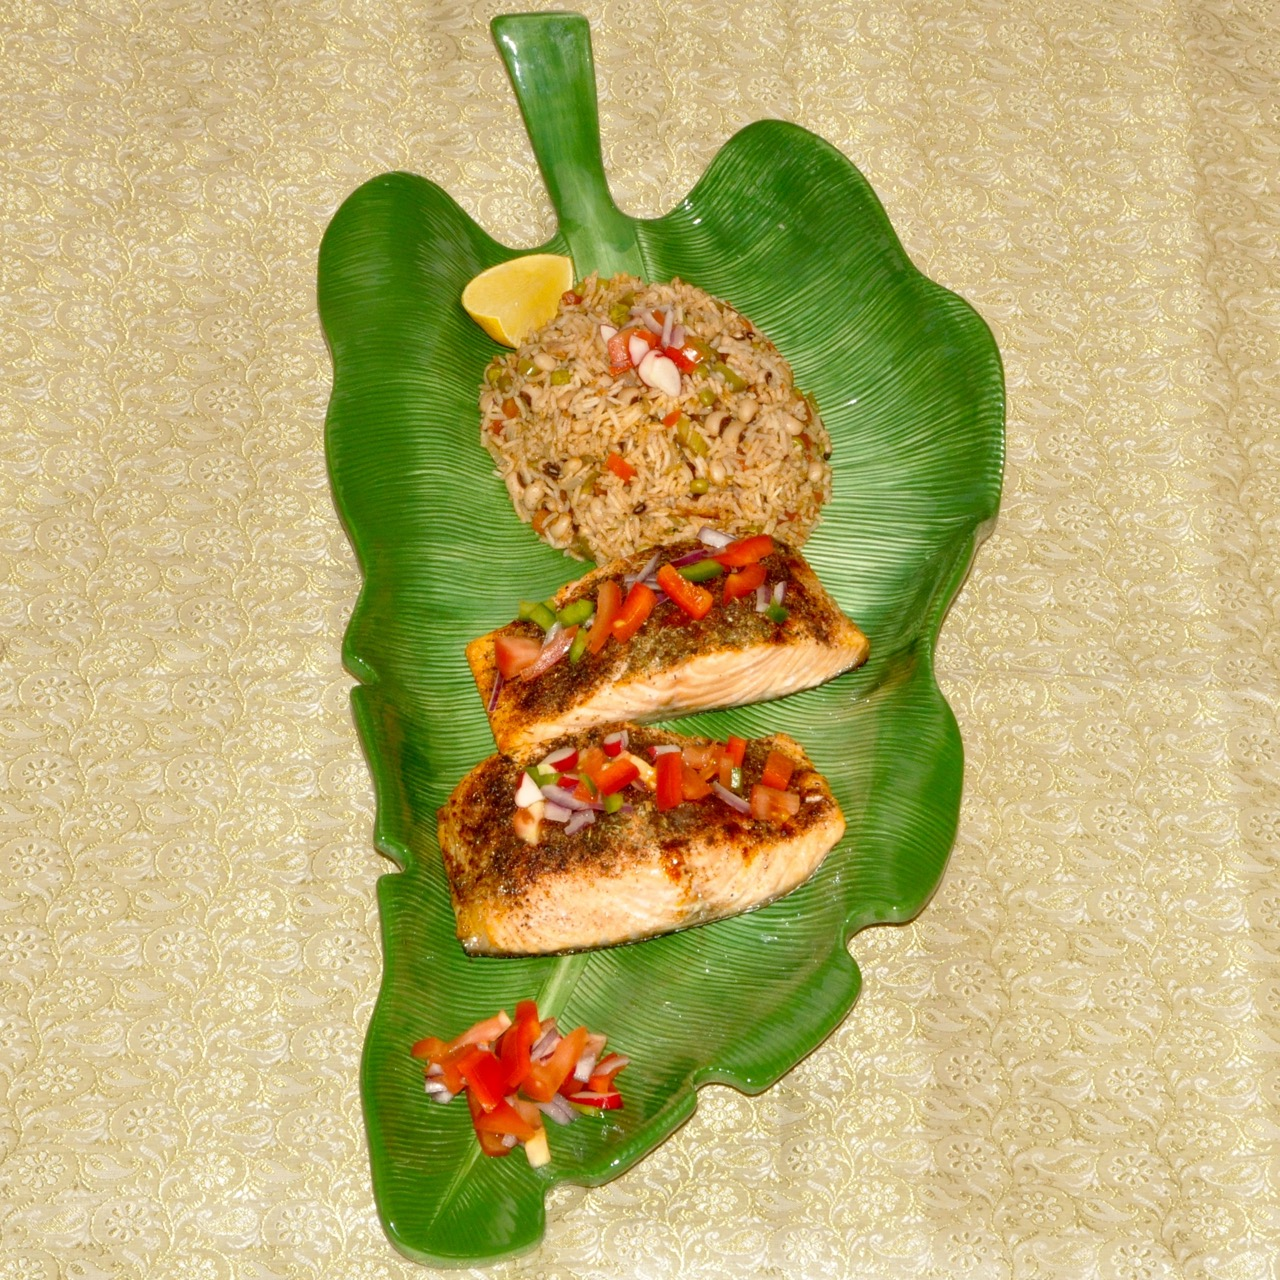 Spiced Grilled Fish